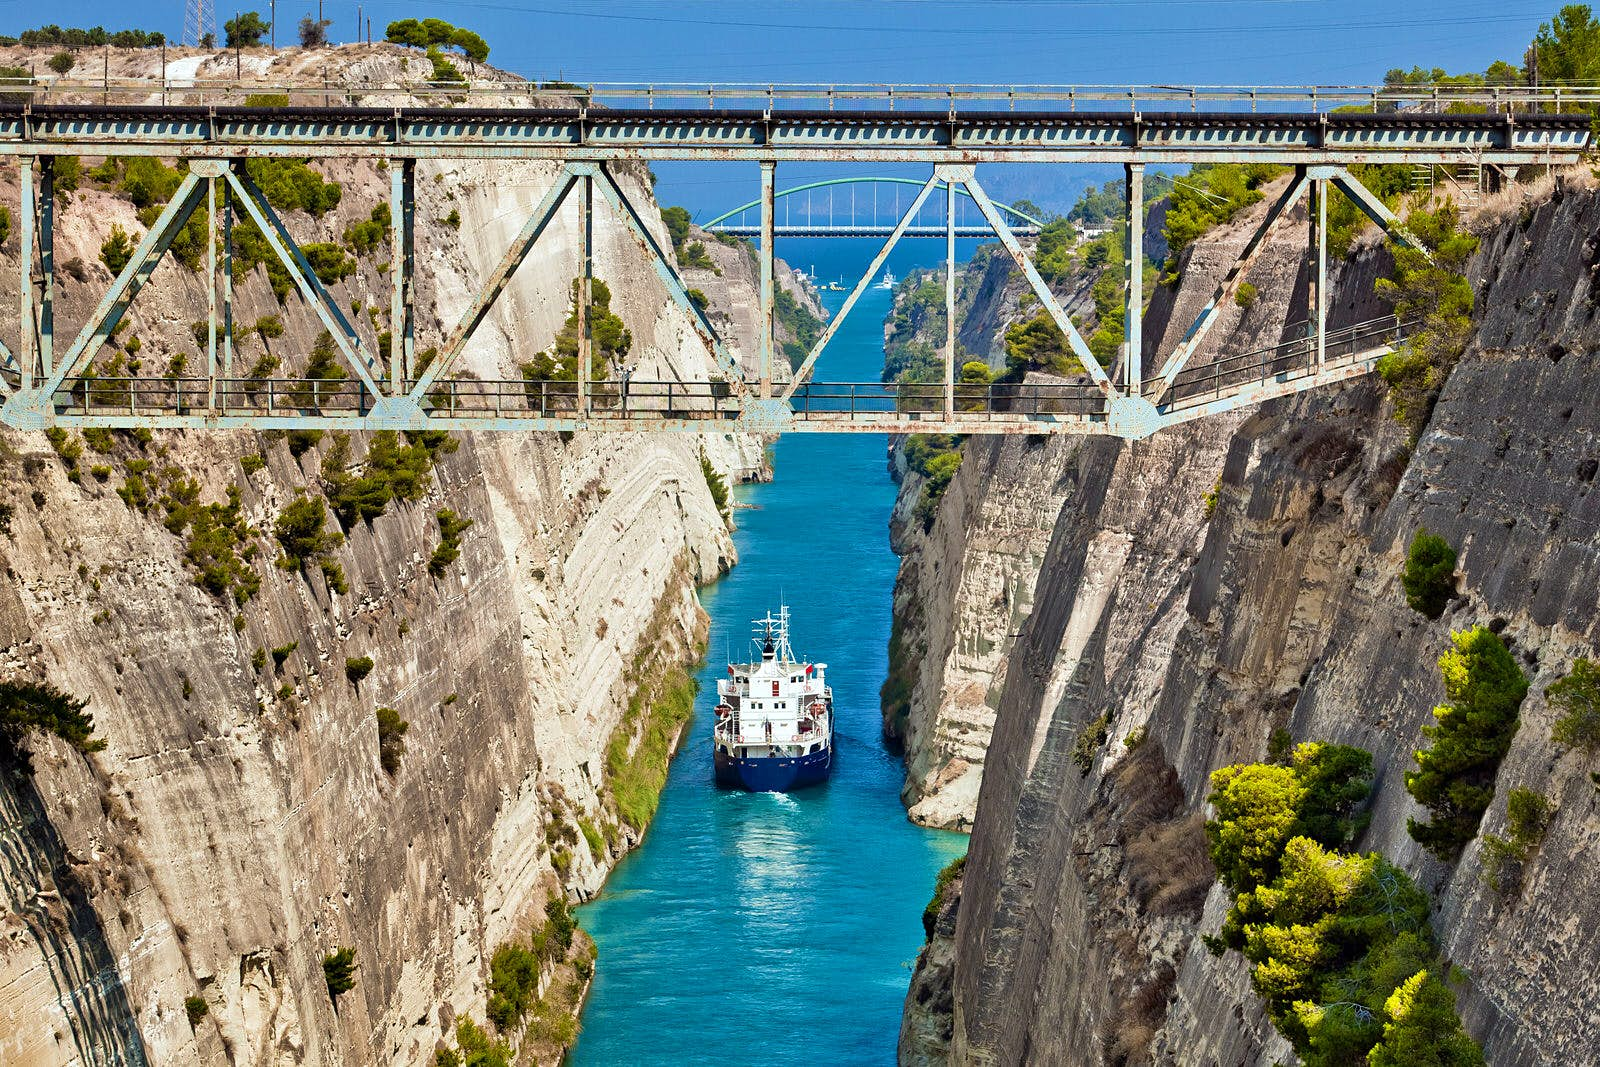 A boat crossing the Corinth Canal © Alexander Tolstykh / Shutterstock